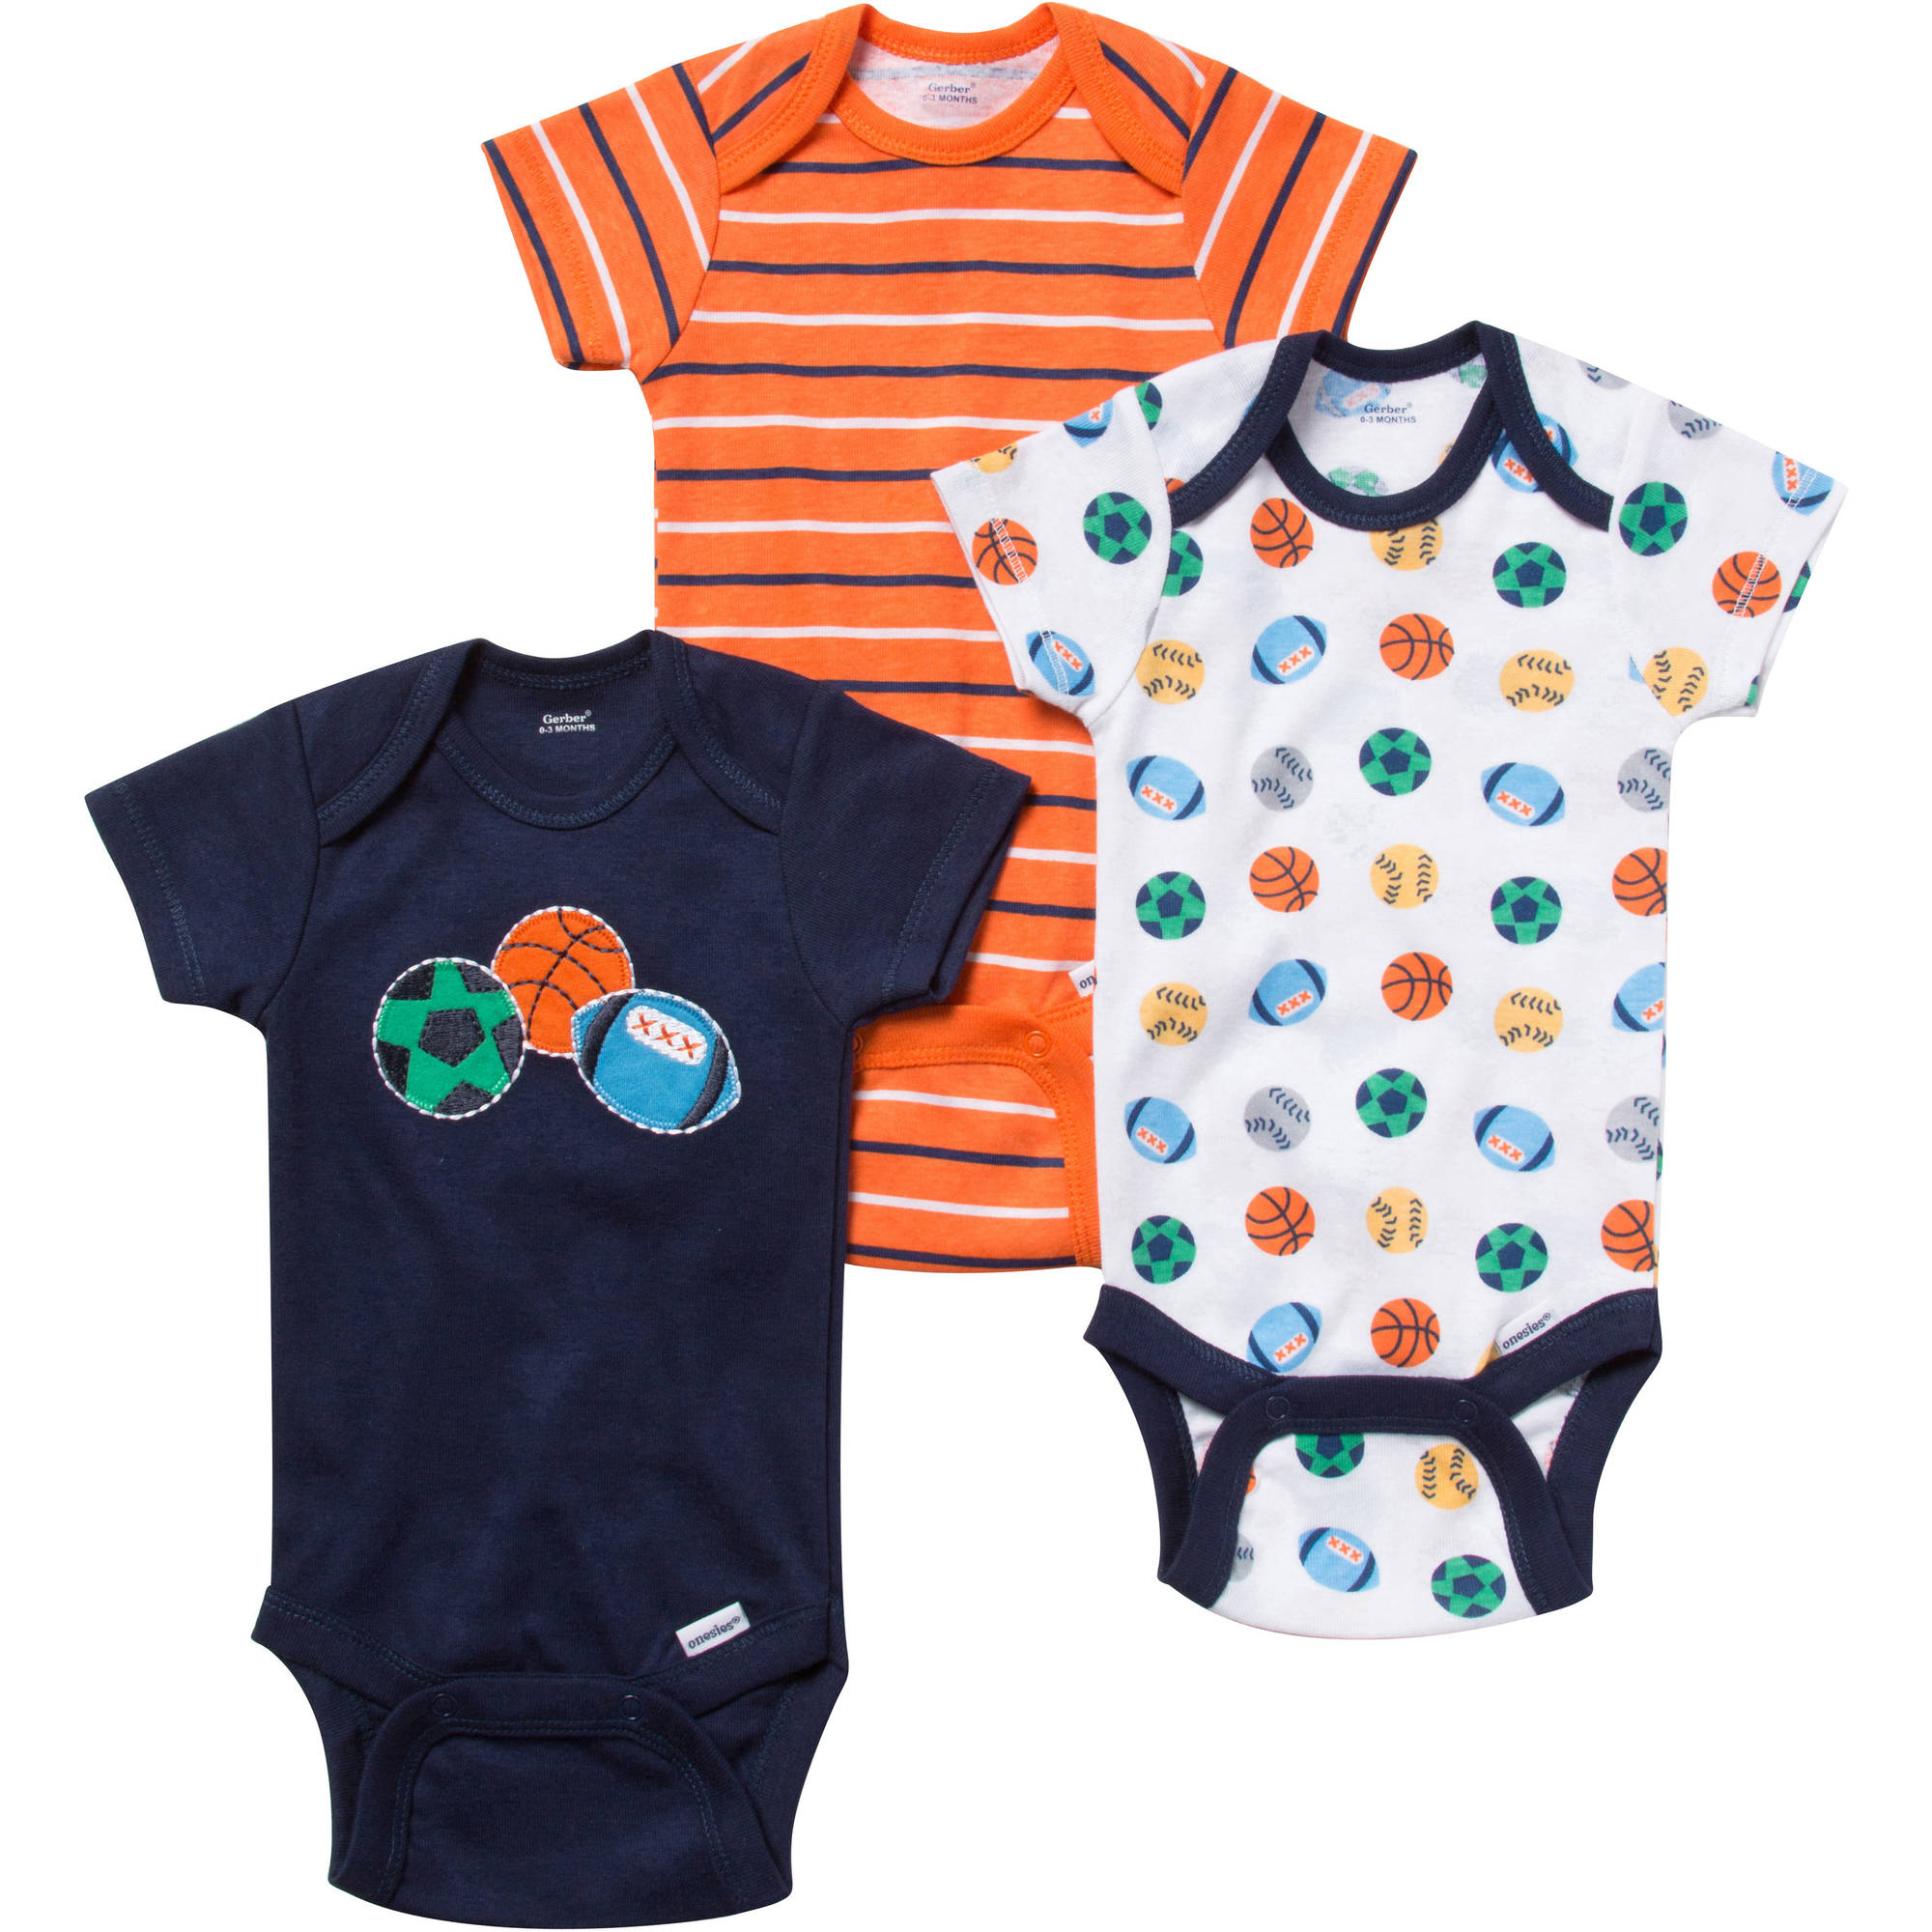 You've searched for Baby Boys' Bodysuits! Etsy has thousands of unique options to choose from, like handmade goods, vintage finds, and one-of-a-kind gifts. Our global marketplace of sellers can help you find extraordinary items at any price range.